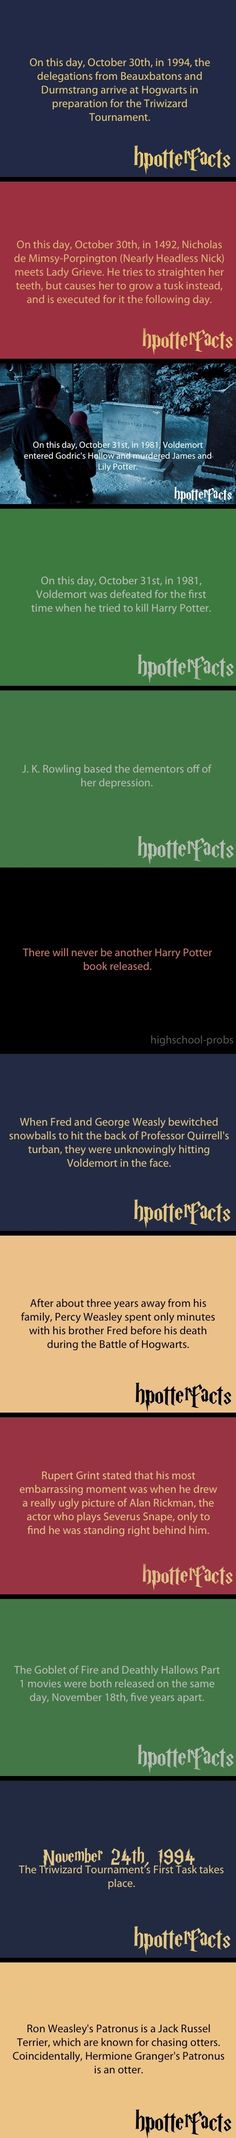 Harry Potter Facts // funny pictures - funny photos - funny images - funny pics - funny quotes - #lol #humor #funnypictures